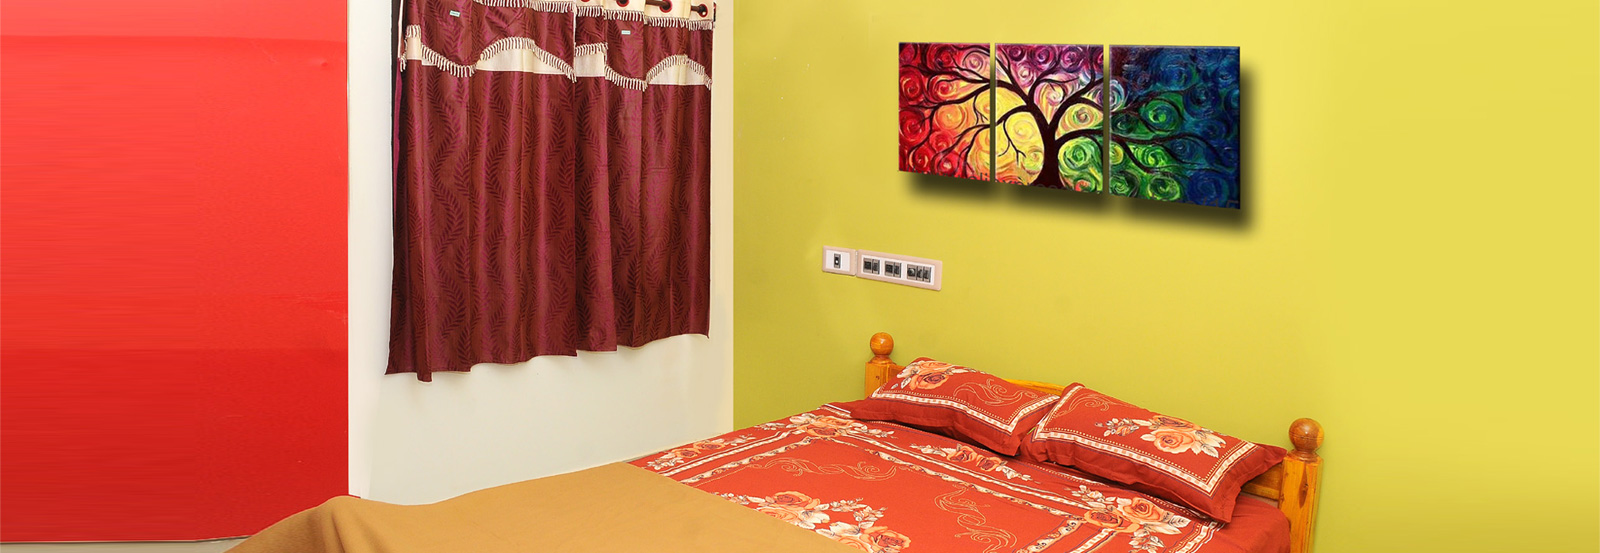 kumbakonam home stay rooms